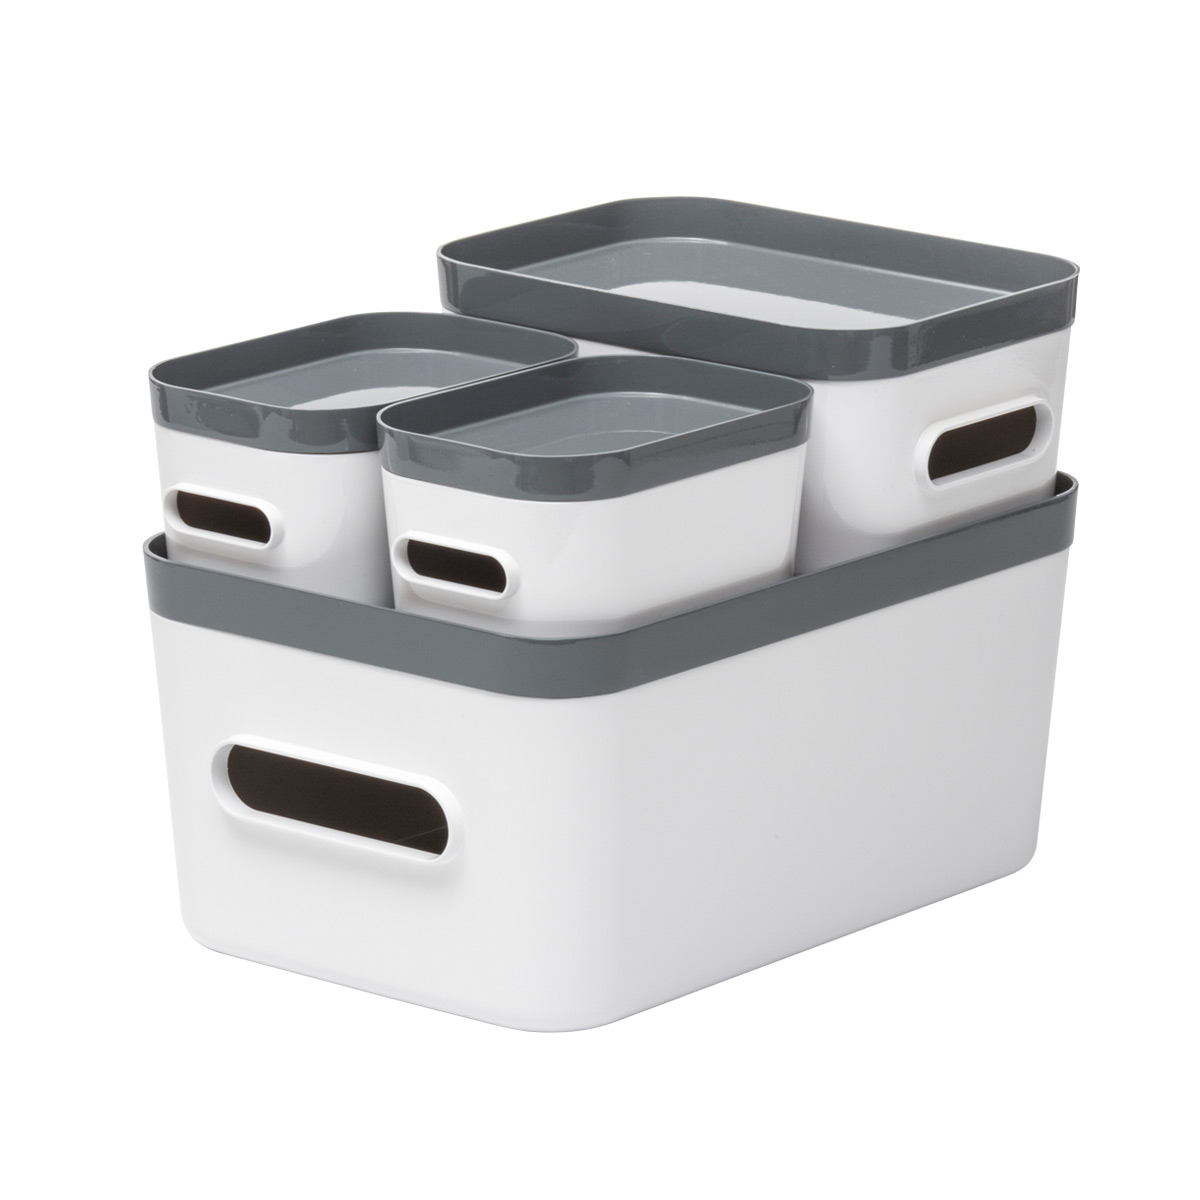 White Compact Plastic Bins 4 Pack With Grey Lids